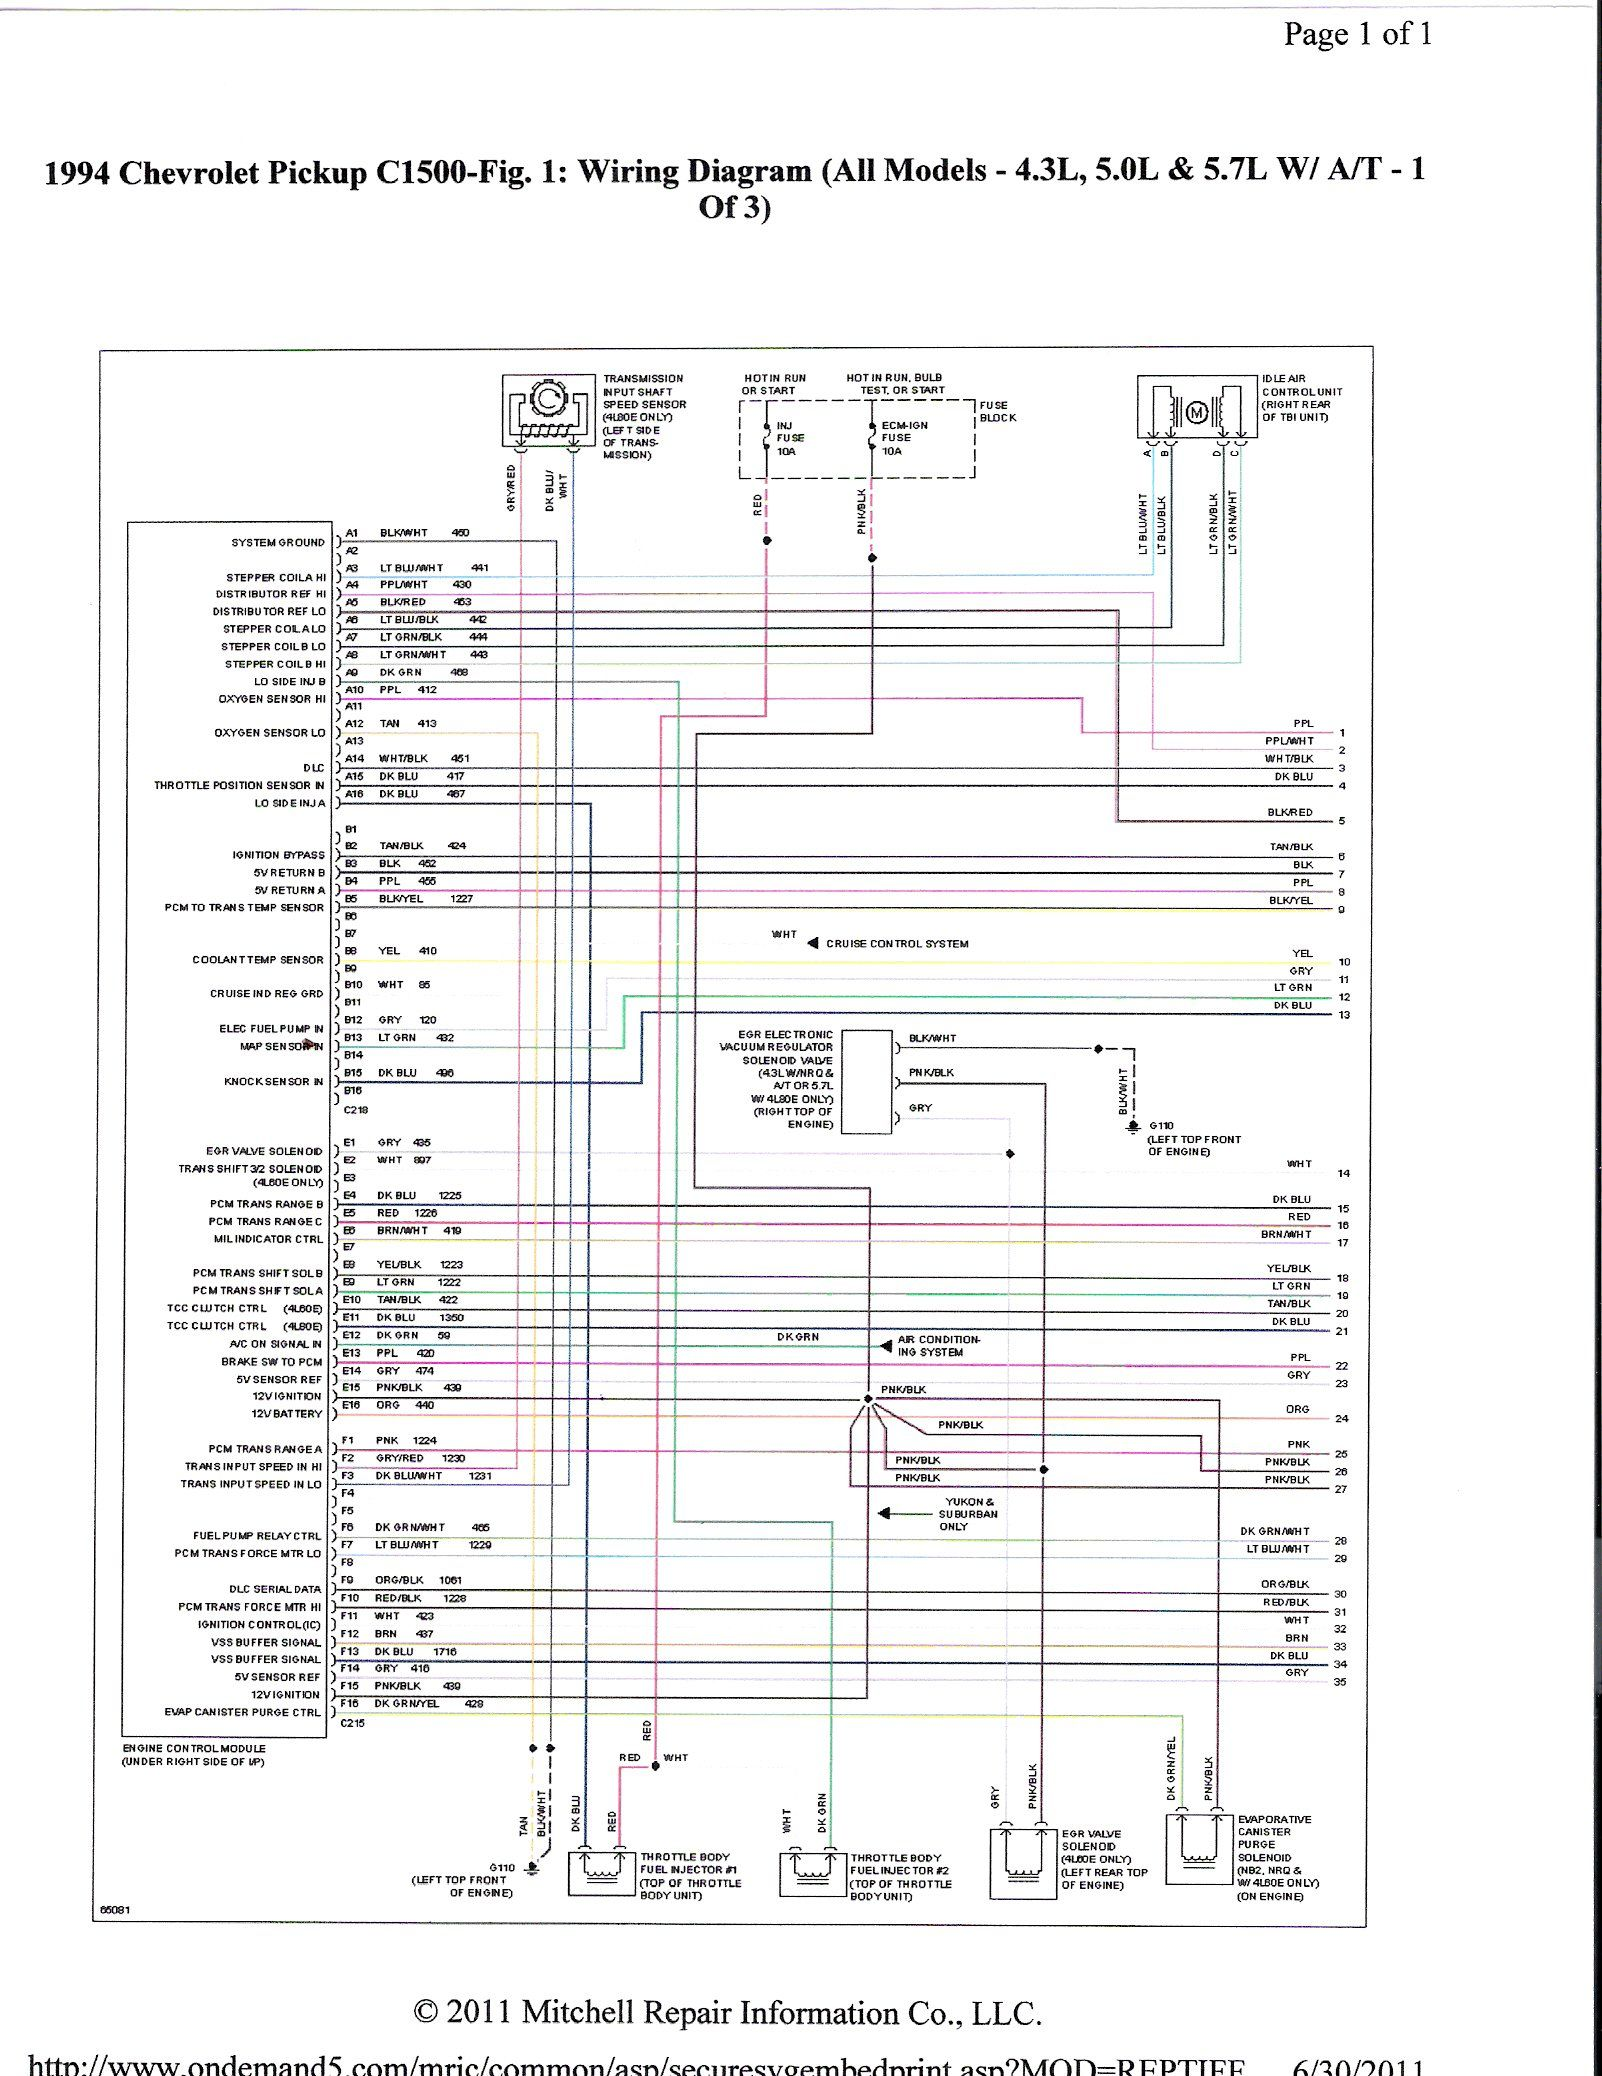 1994 c1500 wiring diagram wiring diagram forward 1994 chevrolet c1500 wiring diagram 1994 c1500 wiring diagram [ 1602 x 2076 Pixel ]